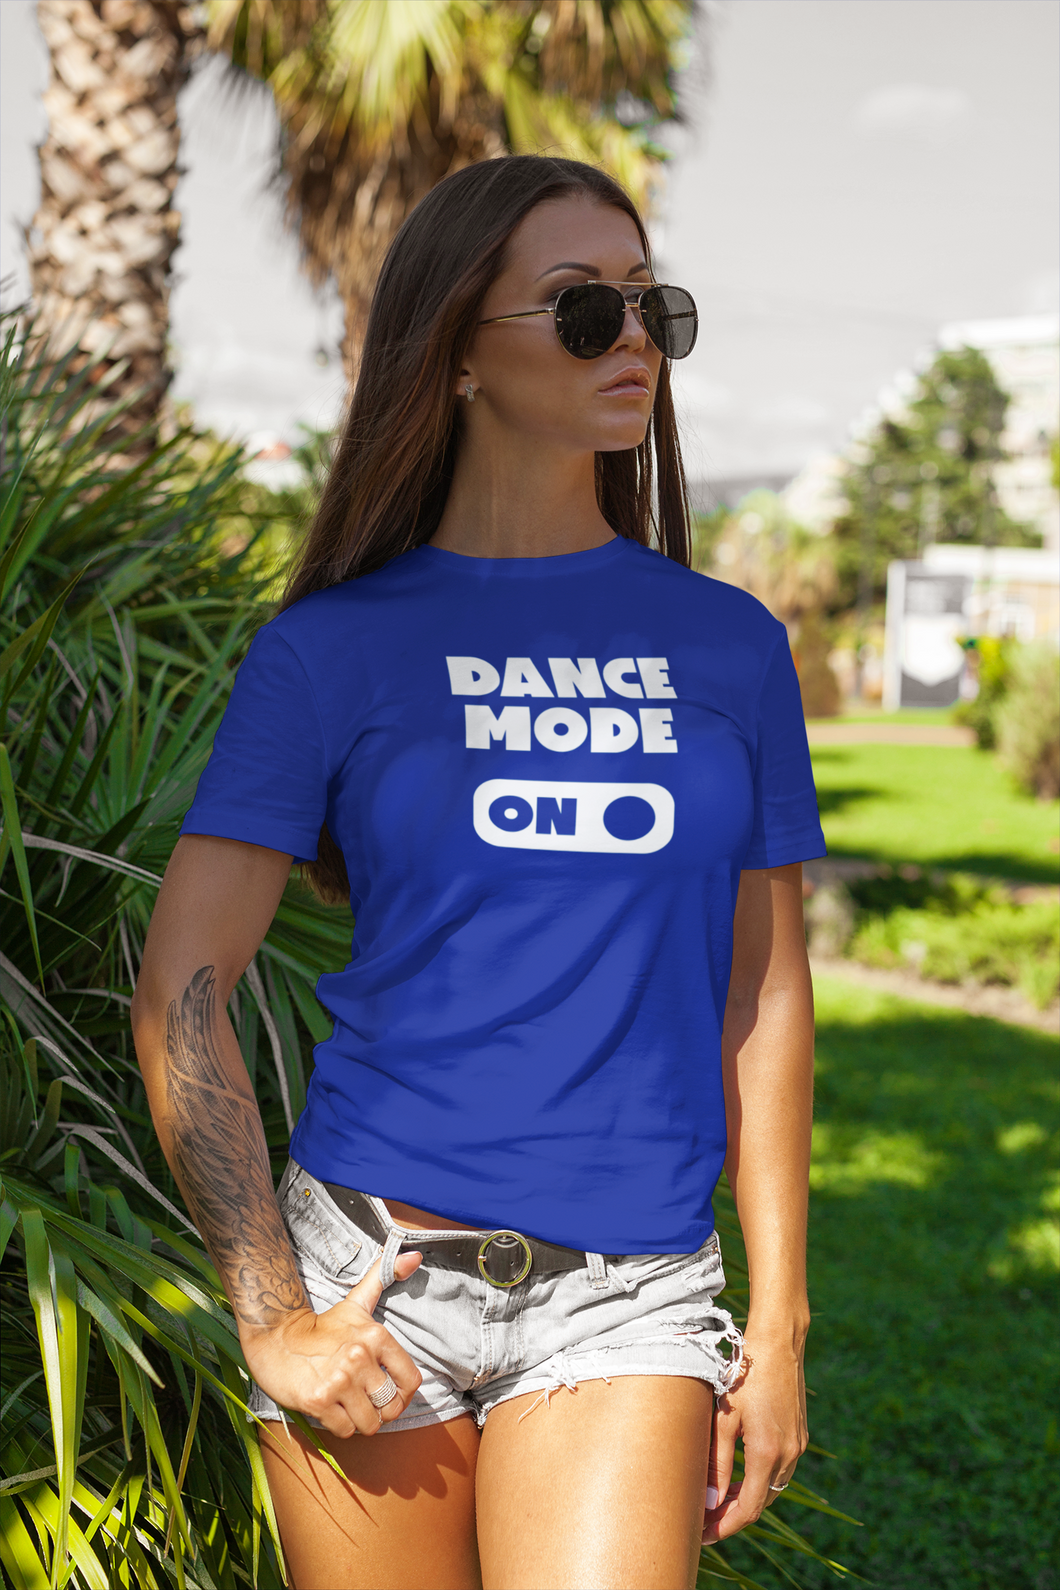 'Dance mode on' shirt voor volwassenen